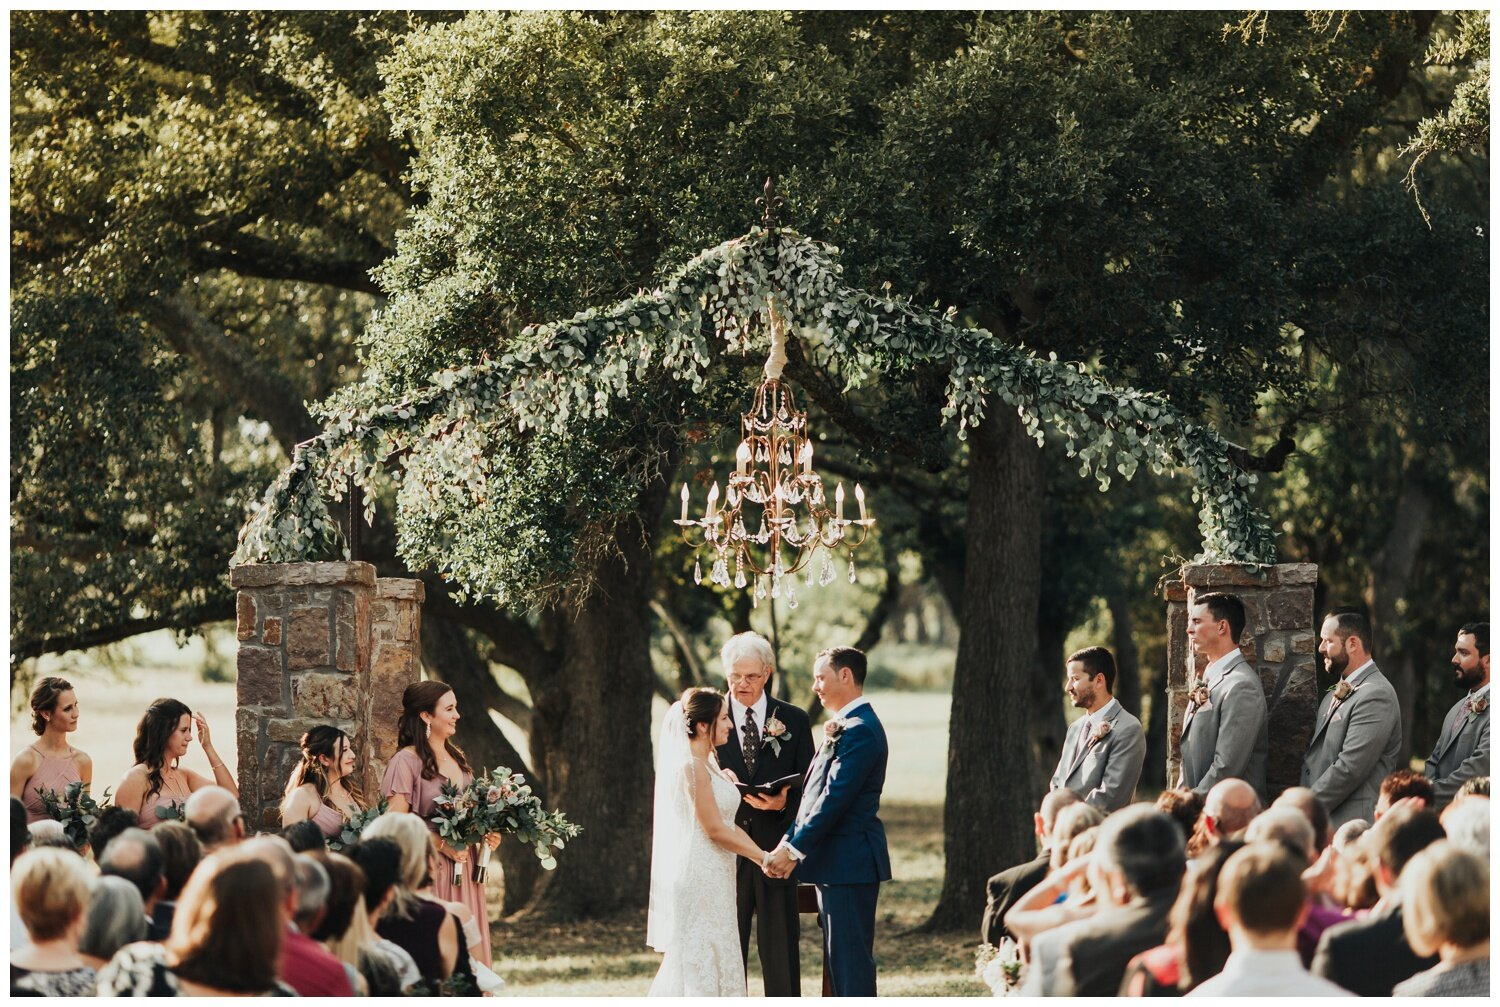 Modern Wedding at Ma Maison in Dripping Springs, Austin, Texas (Joshua and Parisa – Austin Wedding Photographer)_0040.jpg